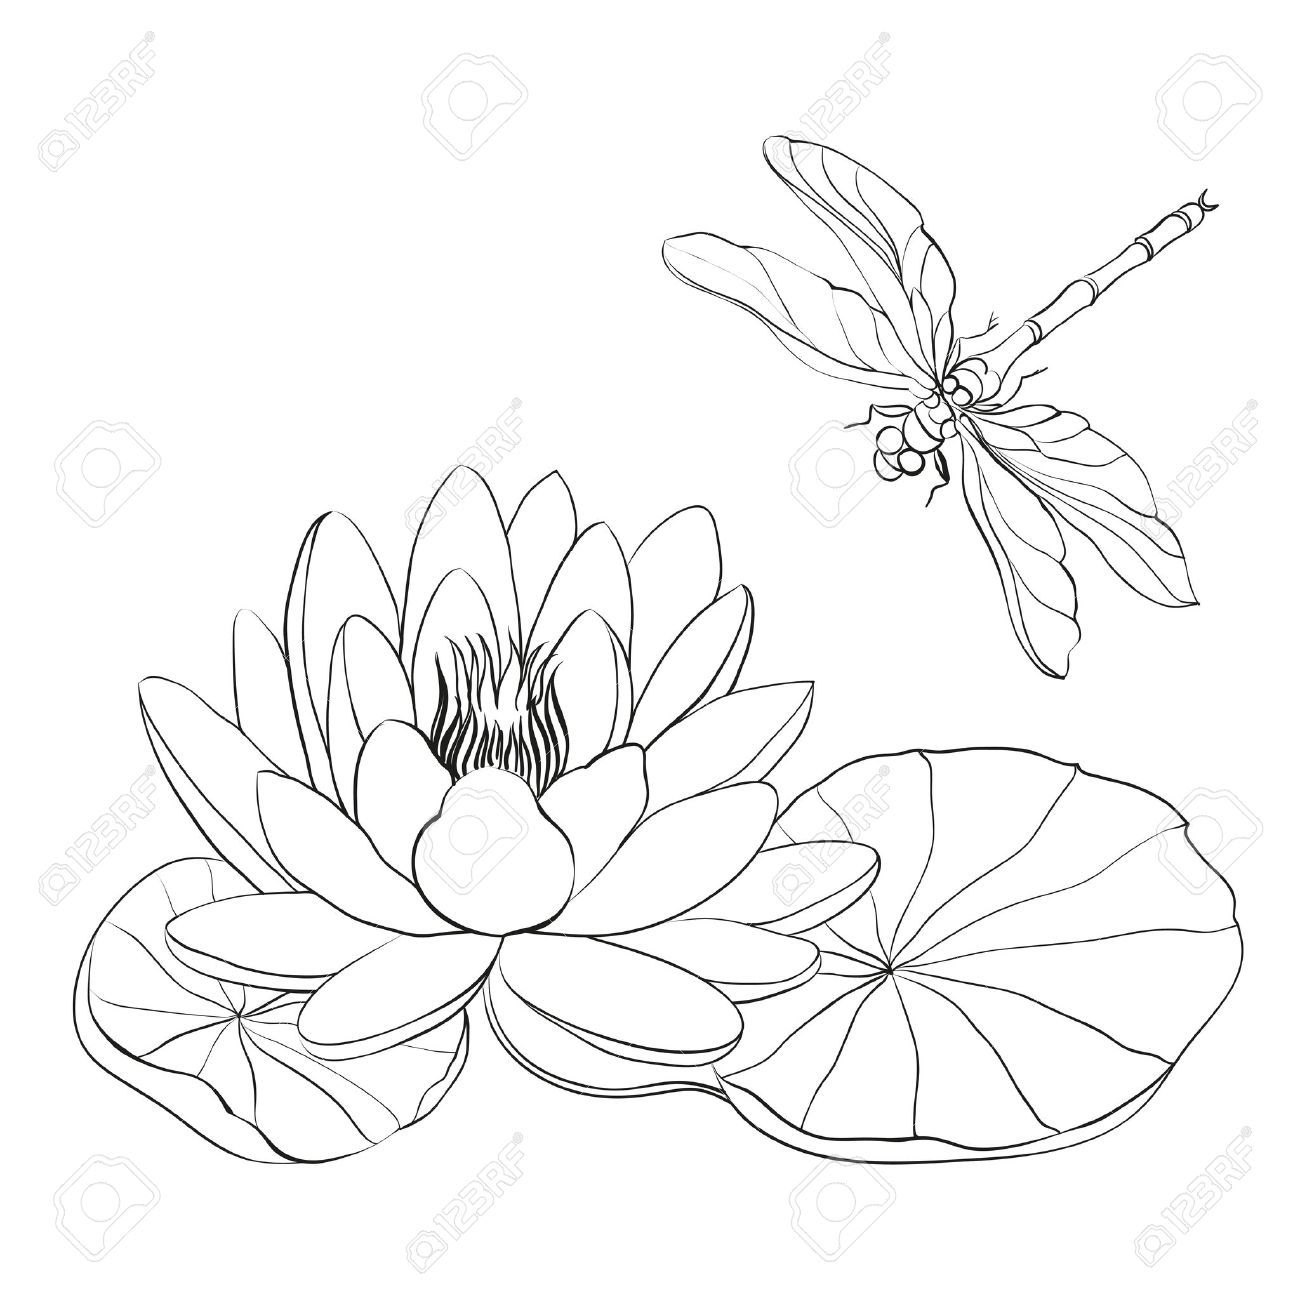 Lily Cliparts Stock Vector And Royalty Free Lily